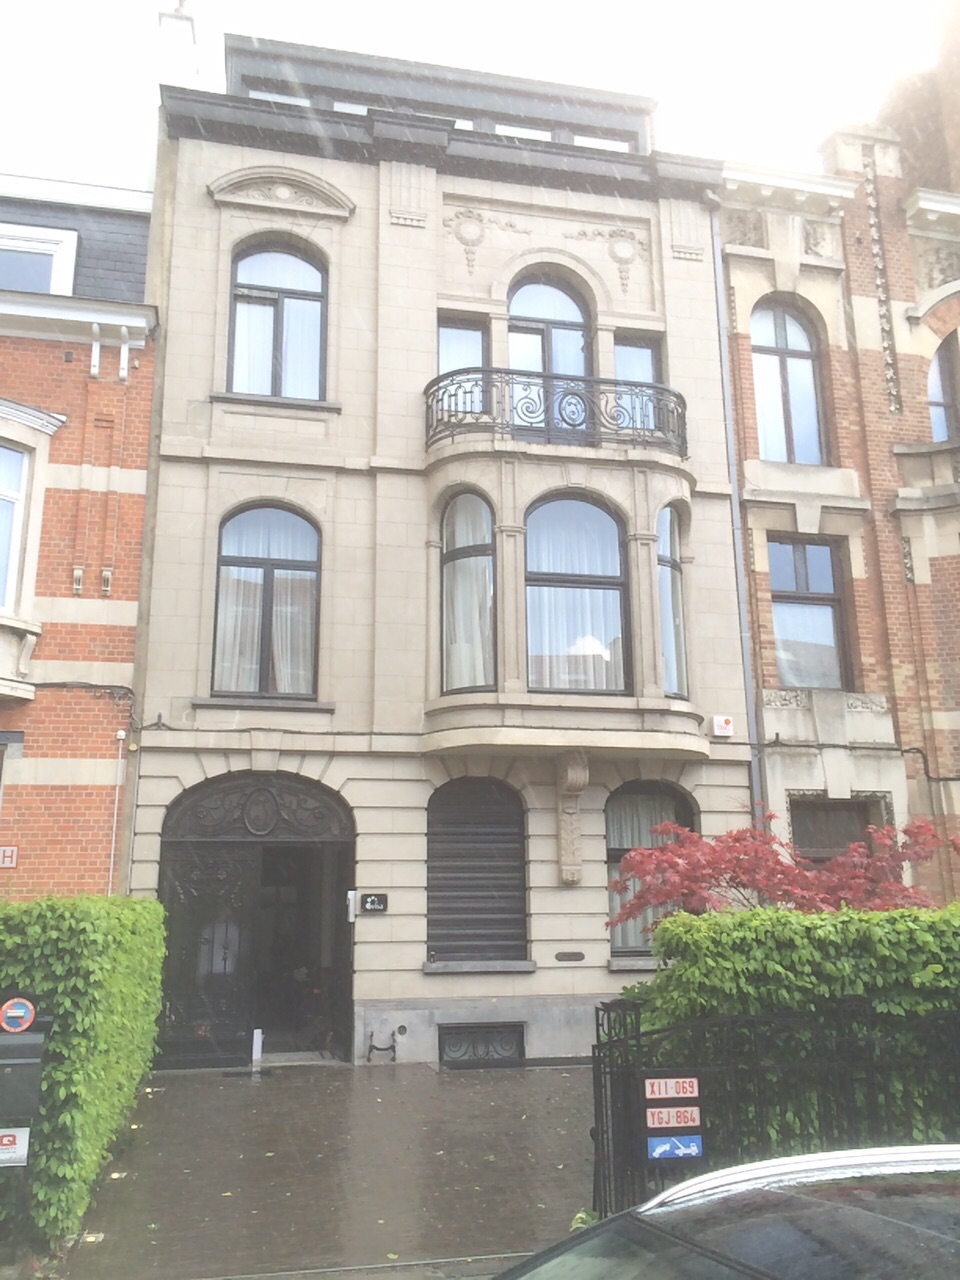 Eclairage ext rieur d une maison de ma tre schaerbeek for Renovation maison de maitre